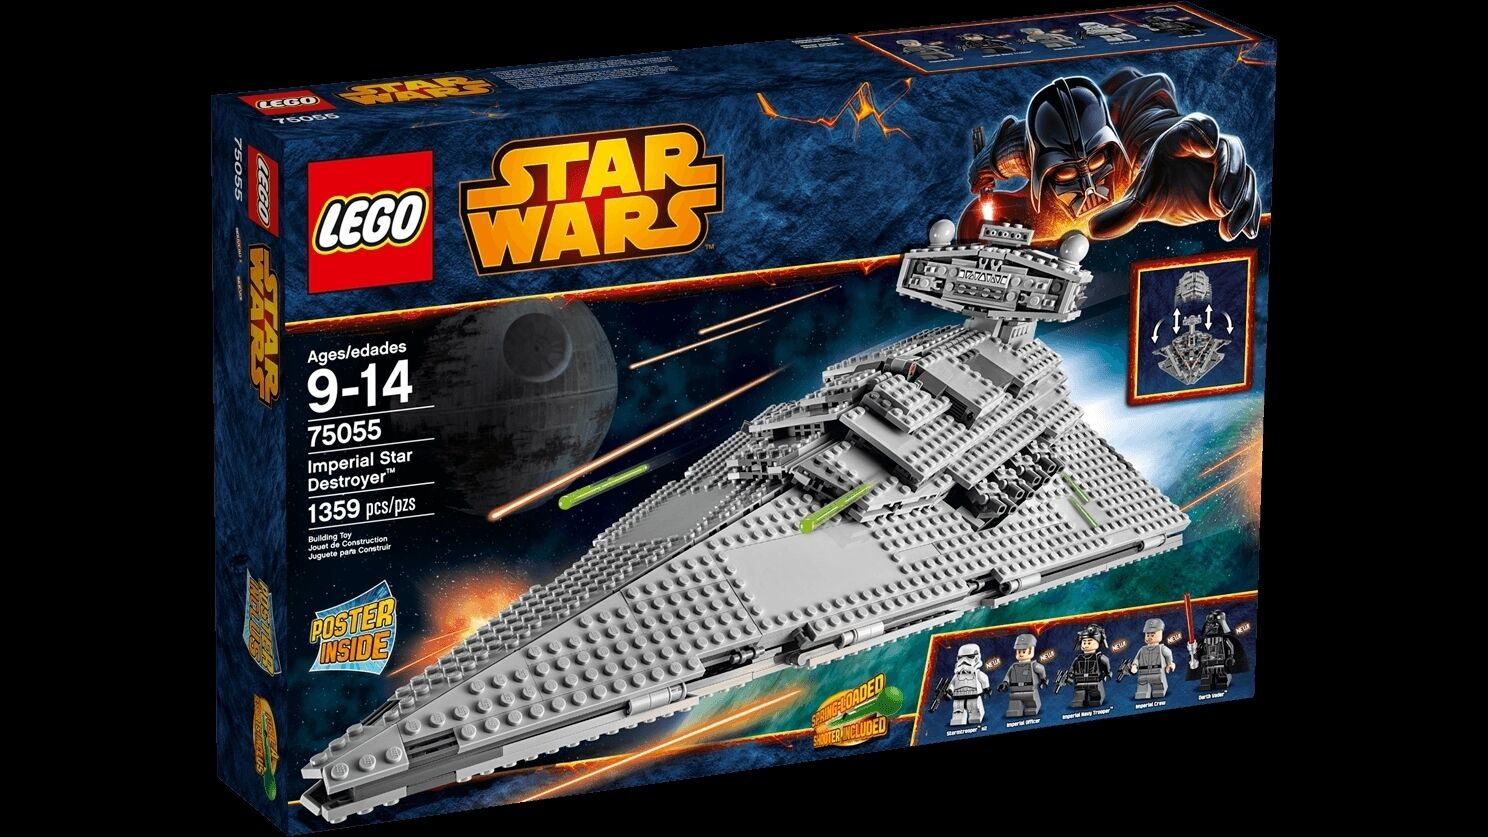 Lego Star Wars 75055 IMPERIAL STAR DESTROYER Darth Vader NISB Xmas Gift Present